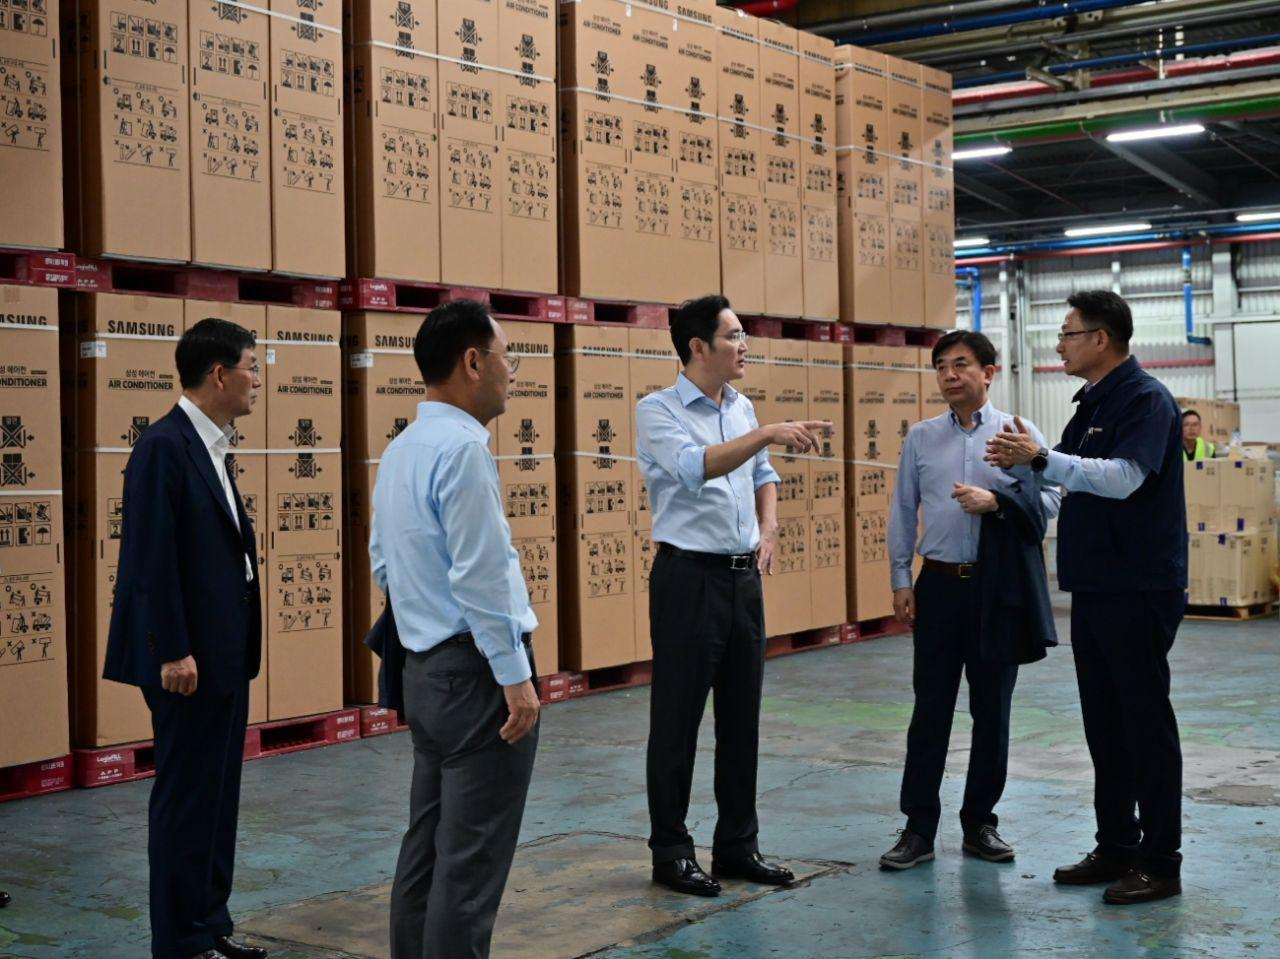 Samsung heir apparent Lee Jae-yong (third from left) takes a look at the shipment section for air conditioners at Samsung's manufacturing facility in Gwangju on Tuesday. (Samsung Electronics)